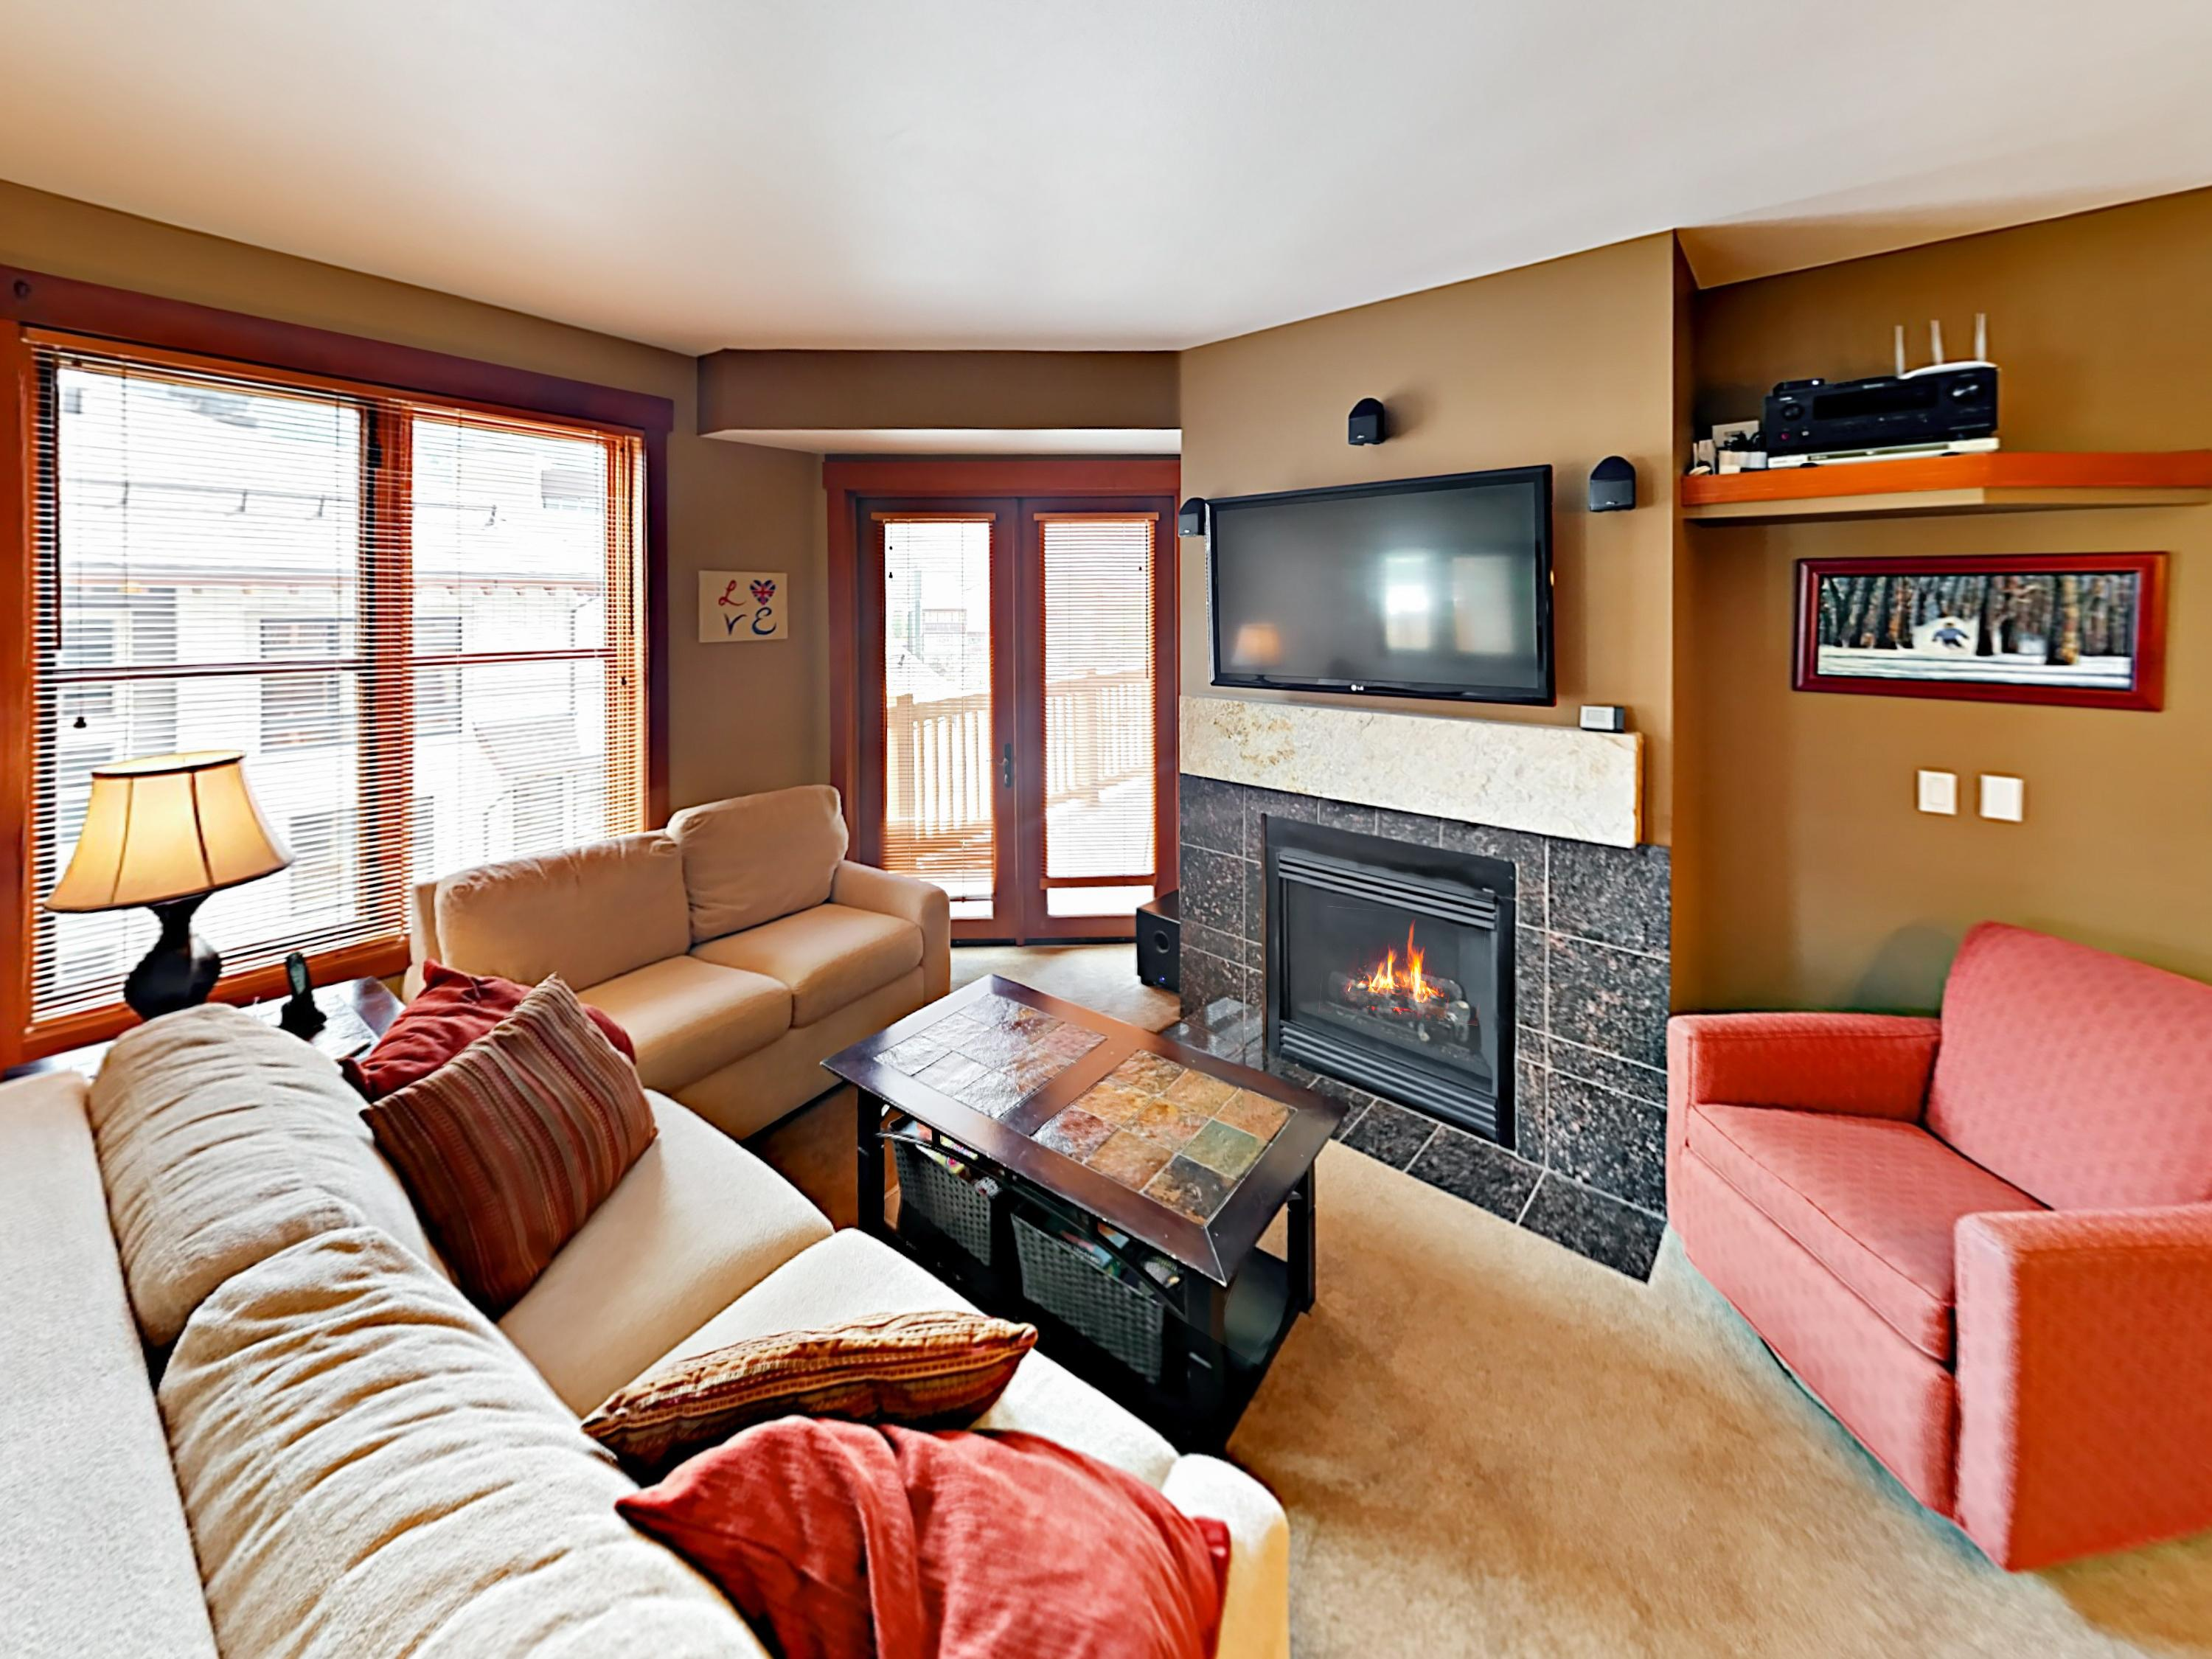 Property Image 1 - Cozy Mountain Condo with Hot Tub, Near Lifts